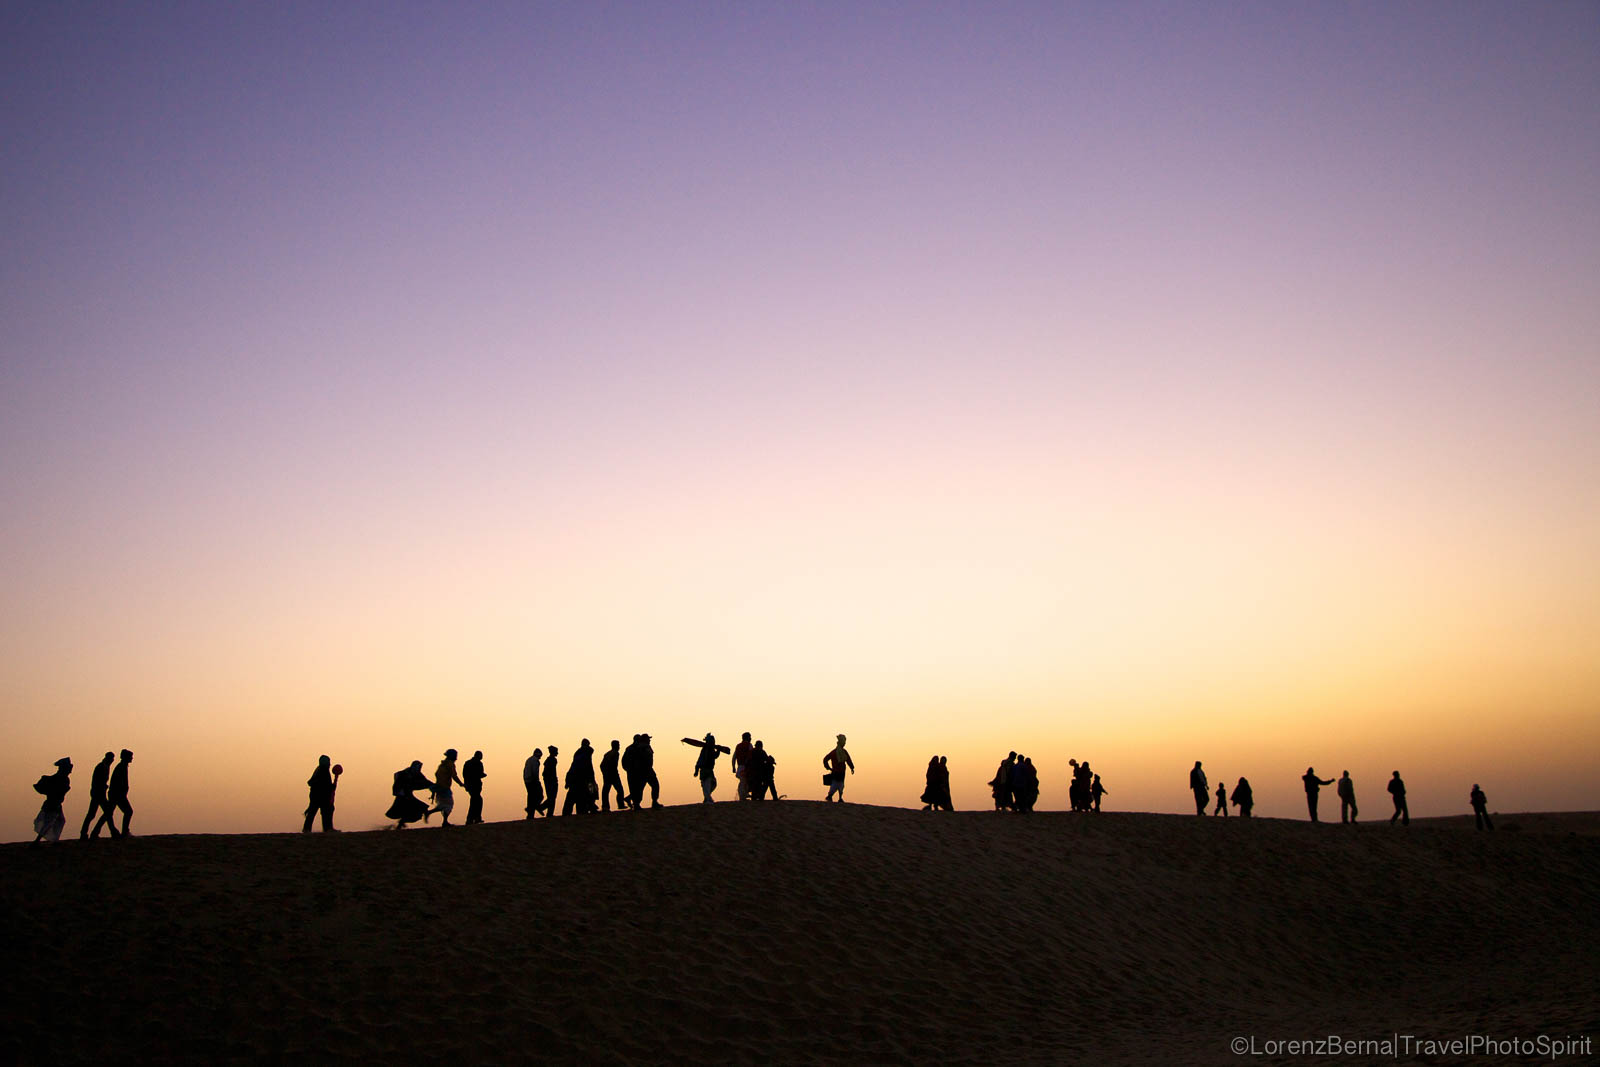 Visitors on their way home from the Desert Festival in Rajasthan - A Lorenz Berna Photography of India